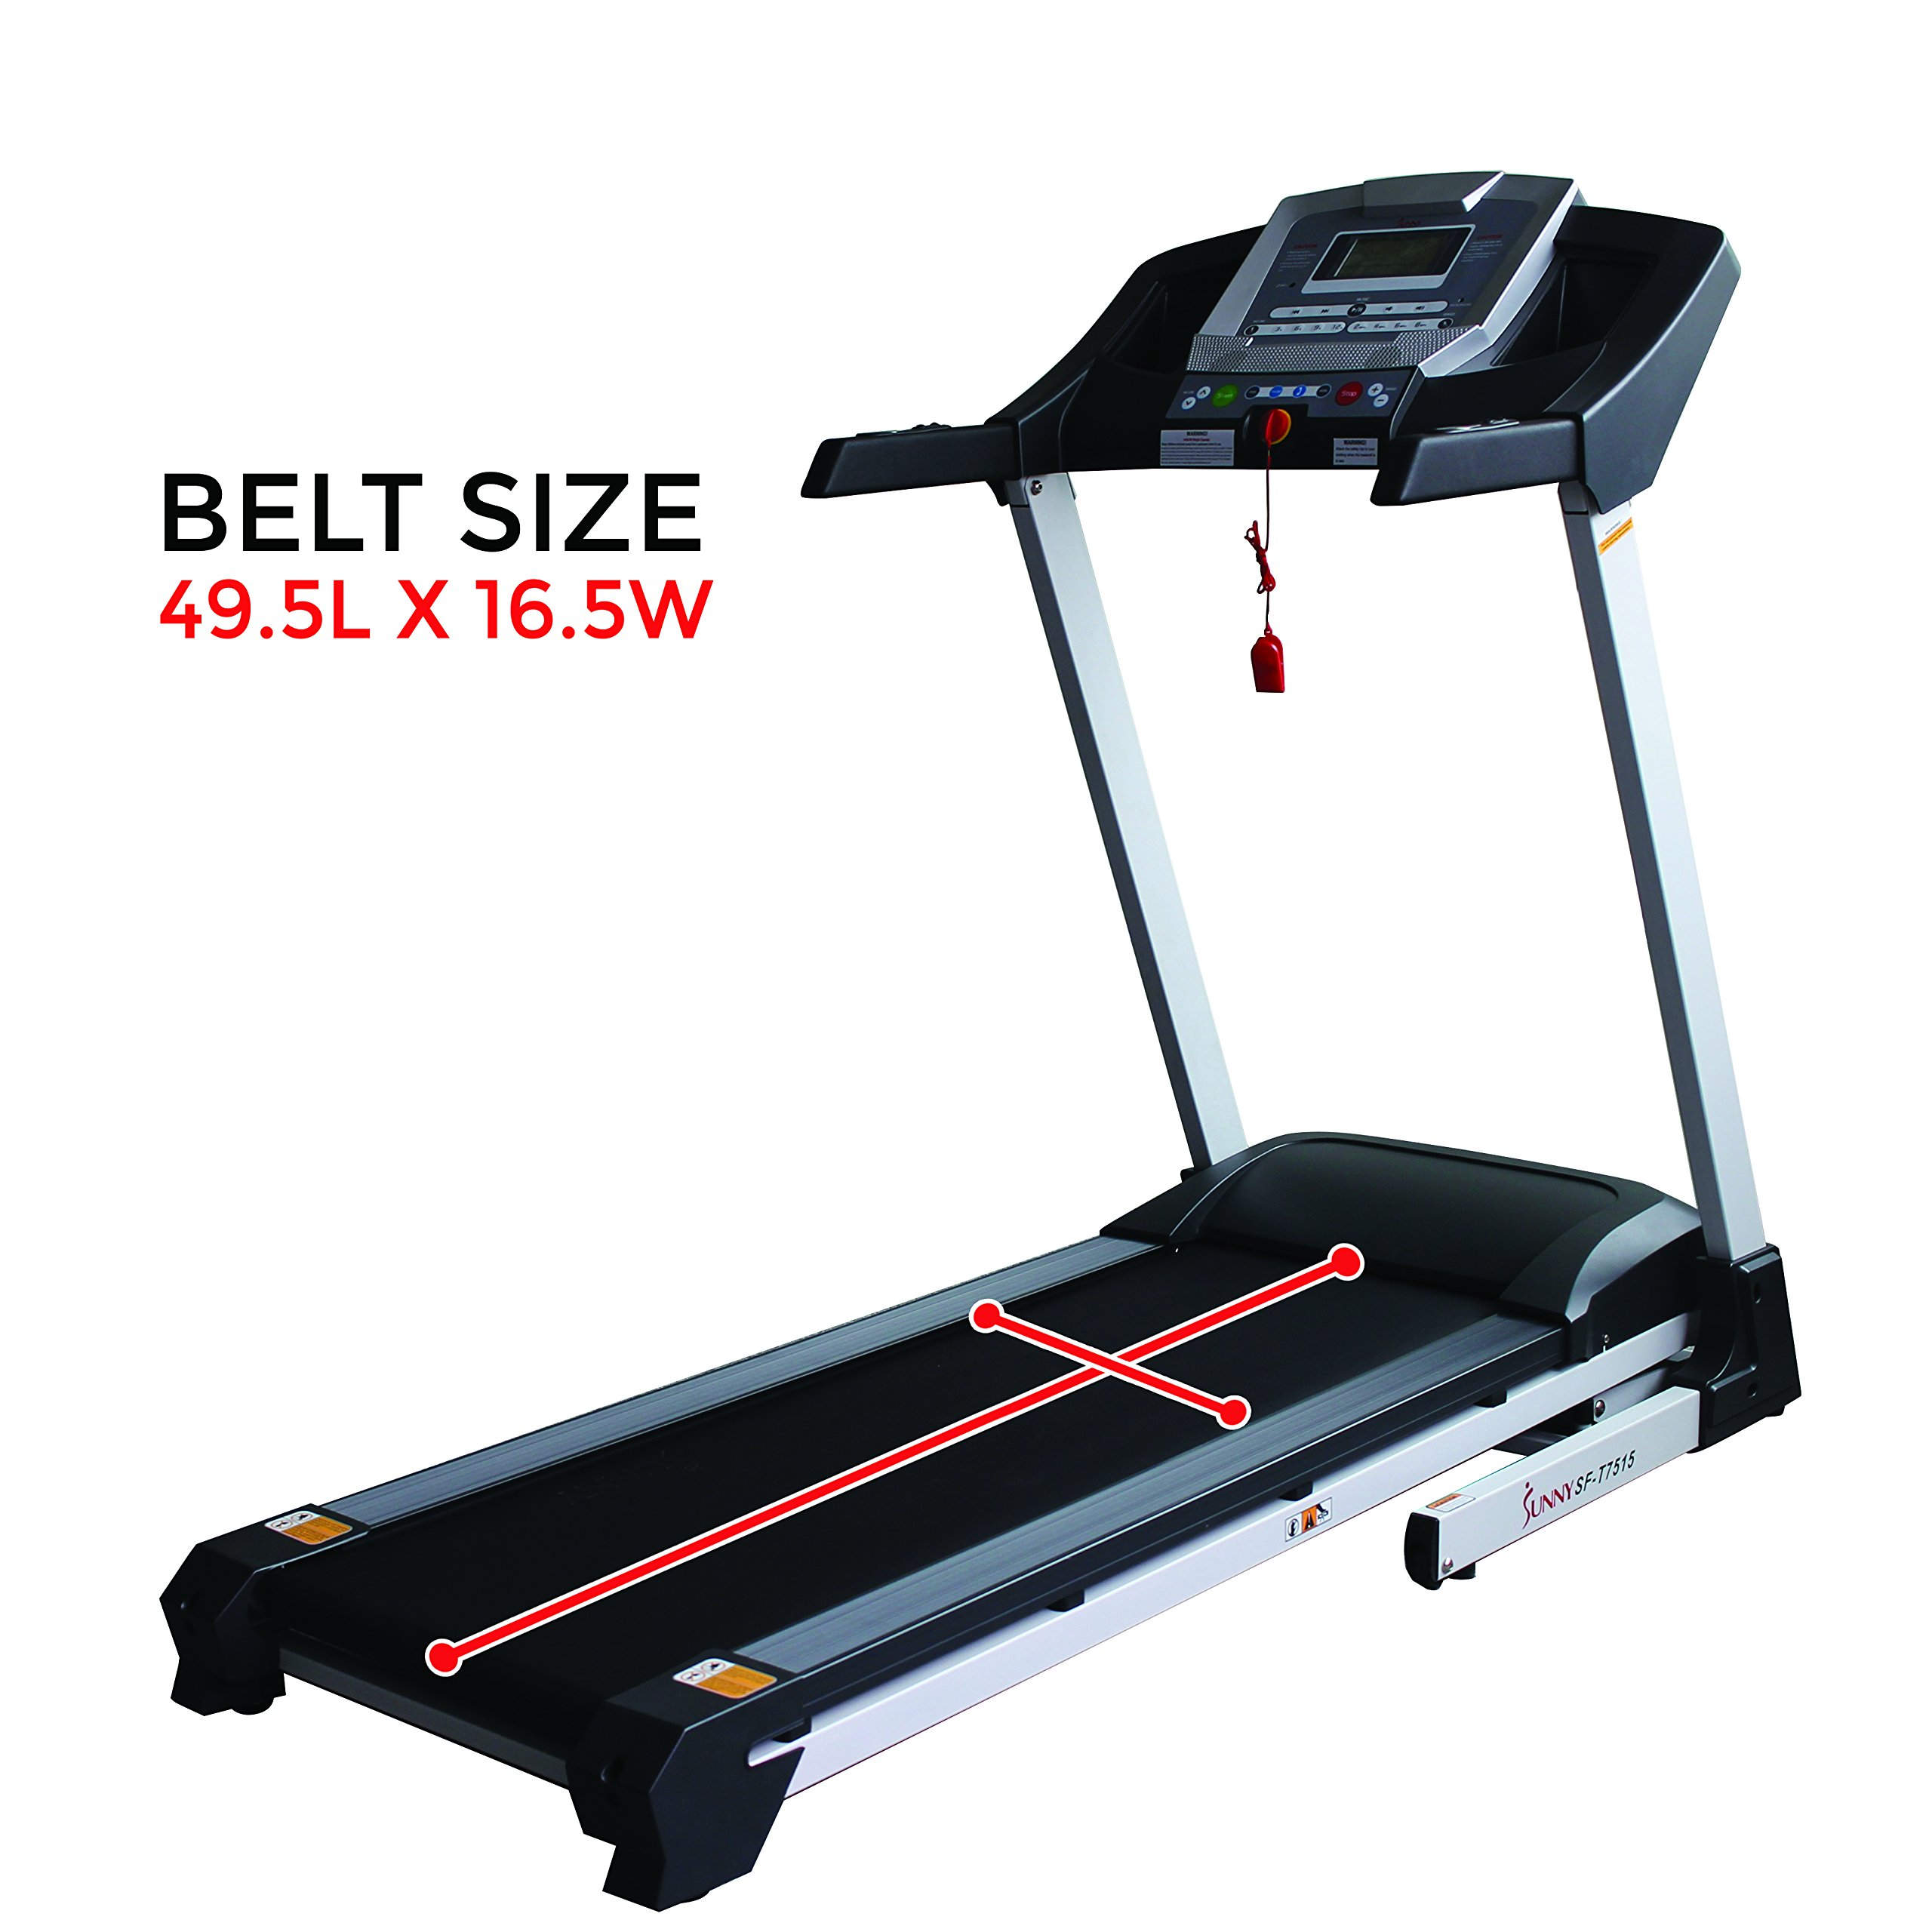 Sunny Health & Fitness SF-T7515 Smart Treadmill with Auto Incline, Bluetooth and BMI Calculator by Sunny Health & Fitness (Image #9)